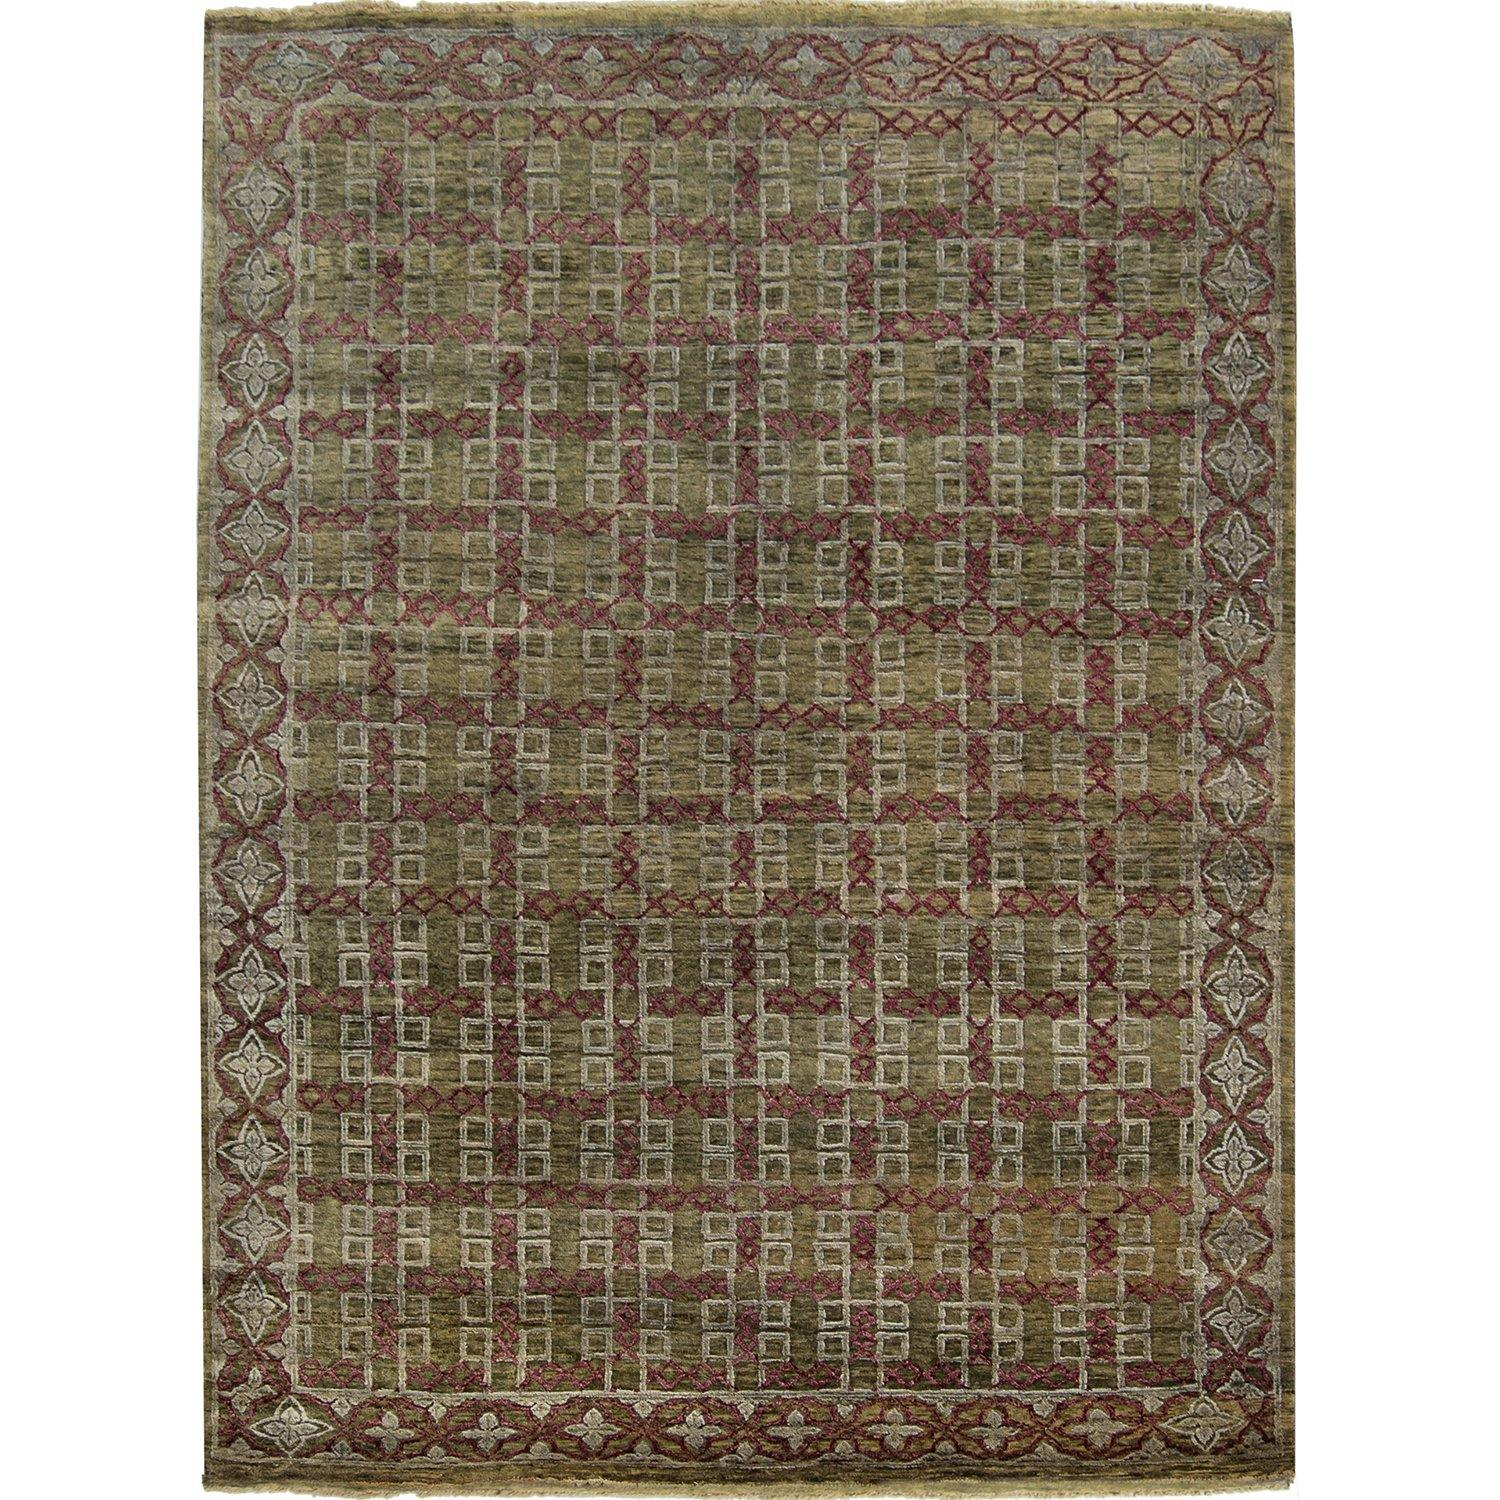 Fine Contemporary NZ Wool Hand-knotted Rug 181cm x 242cm Persian-Rug | House-of-Haghi | NewMarket | Auckland | NZ | Handmade Persian Rugs | Hand Knotted Persian Rugs